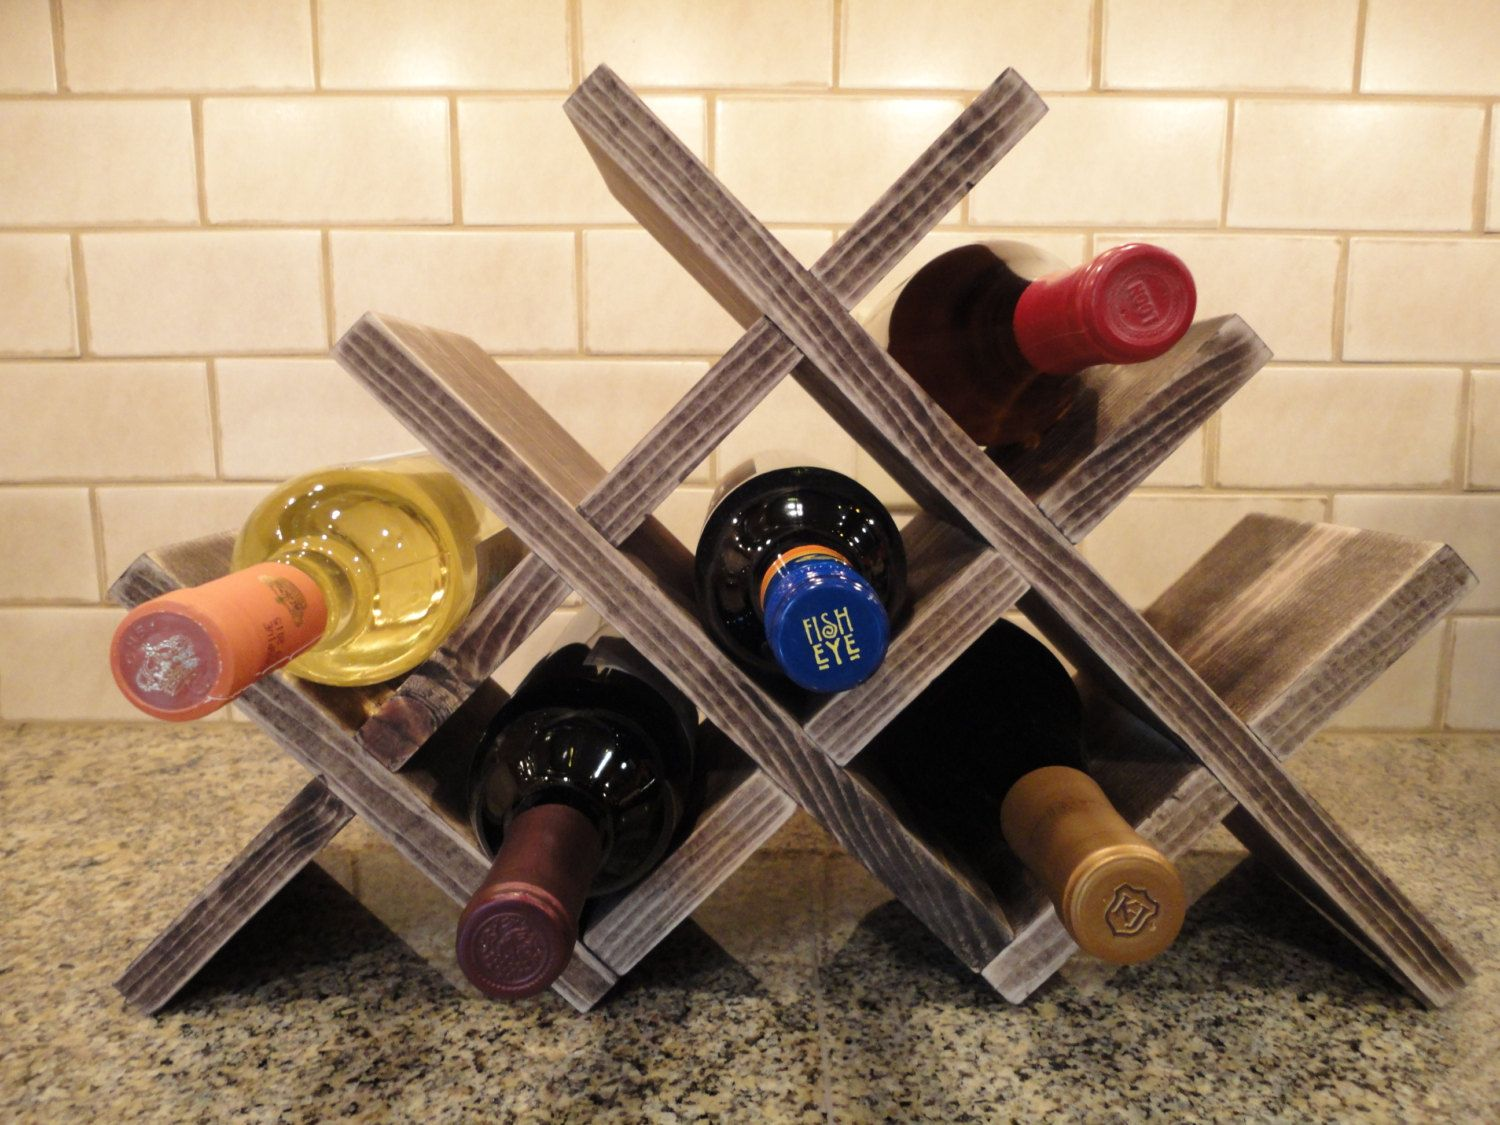 wine rack table top 8 bottles wine rack by - Wine Rack Table